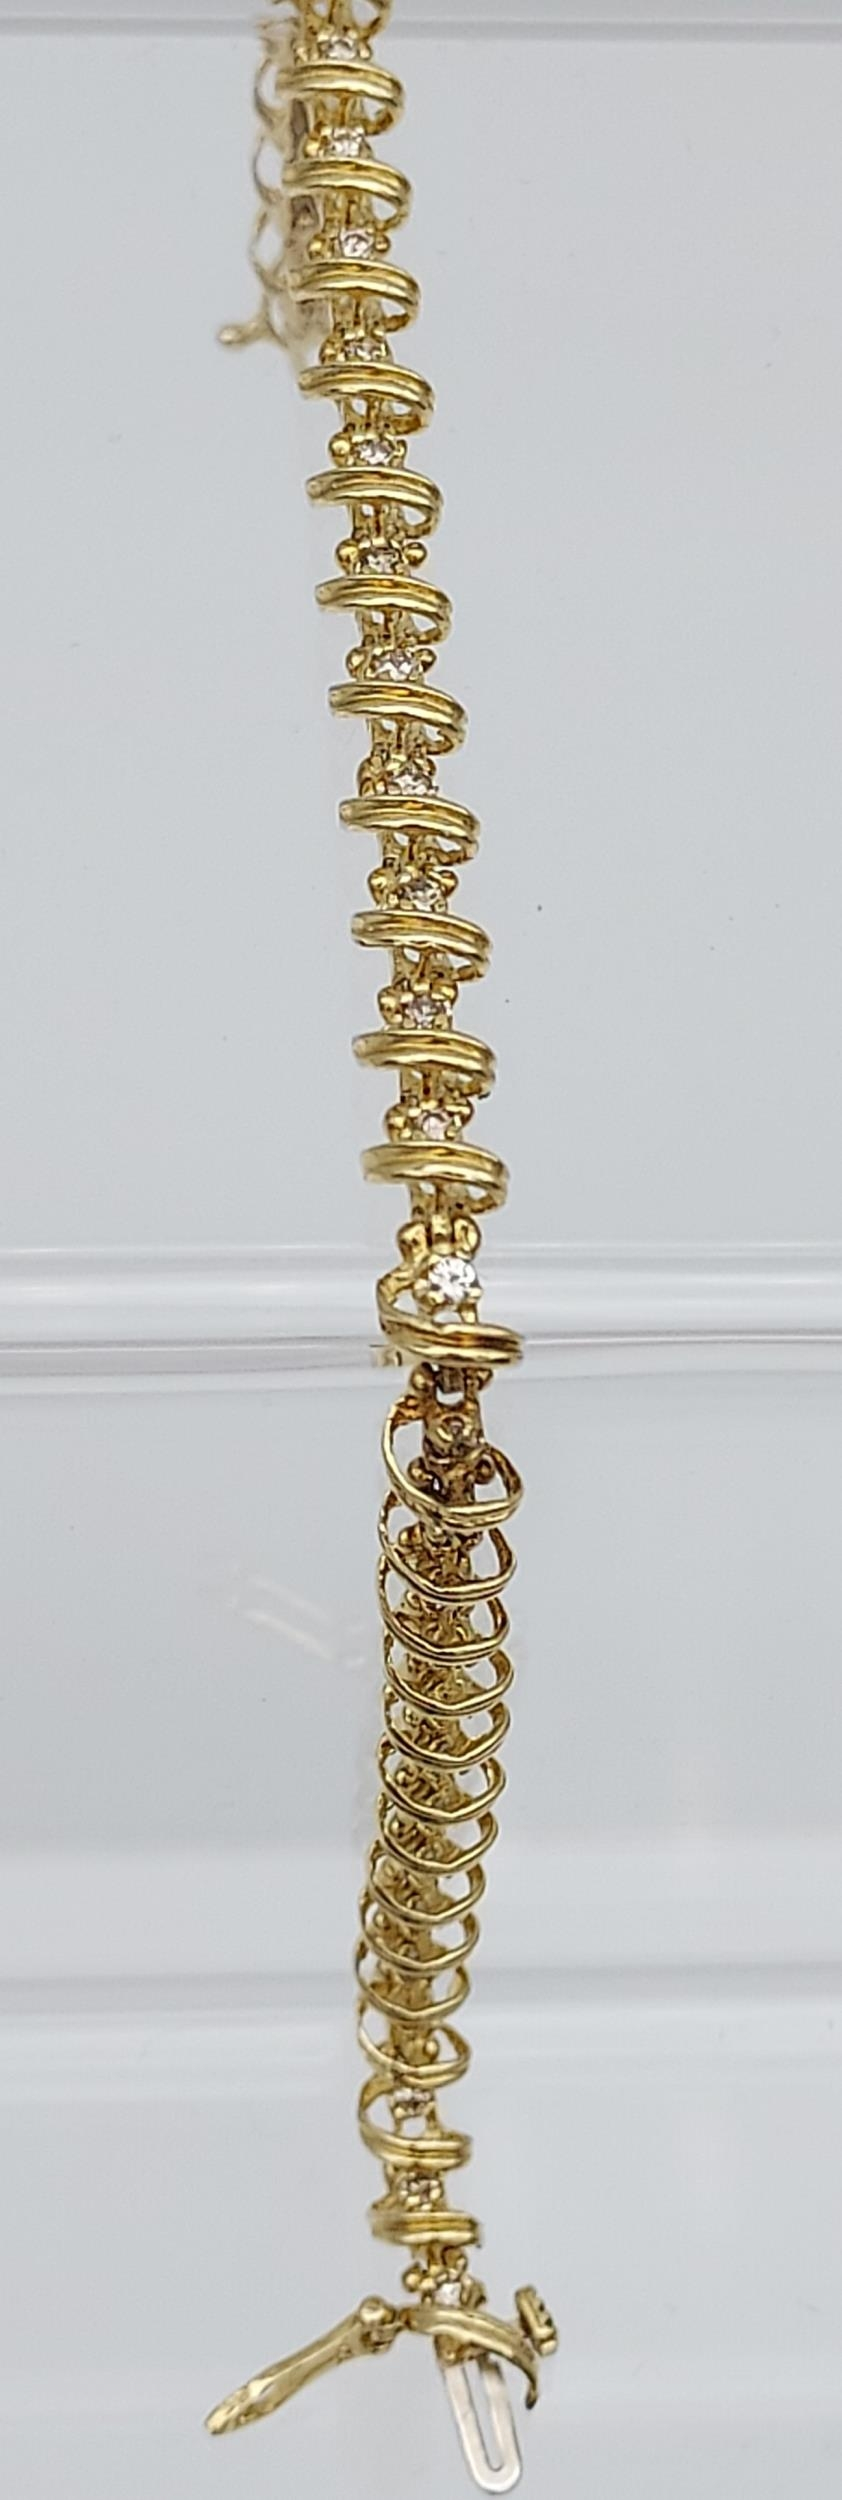 A 14ct yellow gold bracelet made up of 32 diamond panels [1ct approx] [9.58g]